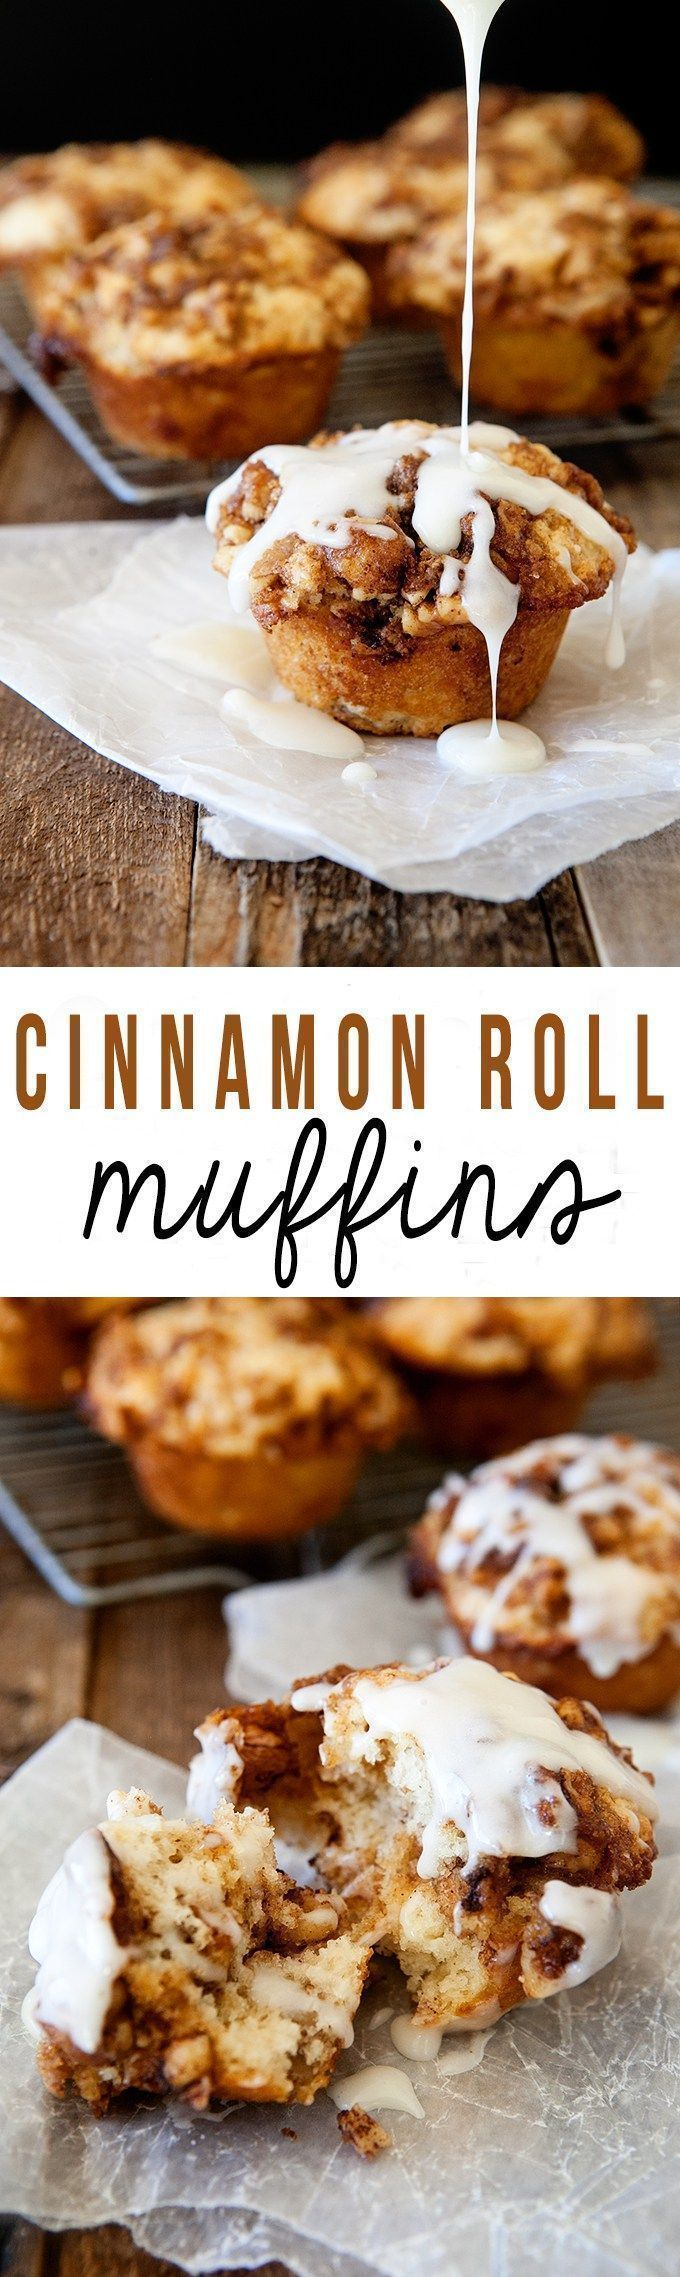 Cinnamon Roll Muffins - Easier than a cinnamon roll but with the same delicious flavor!